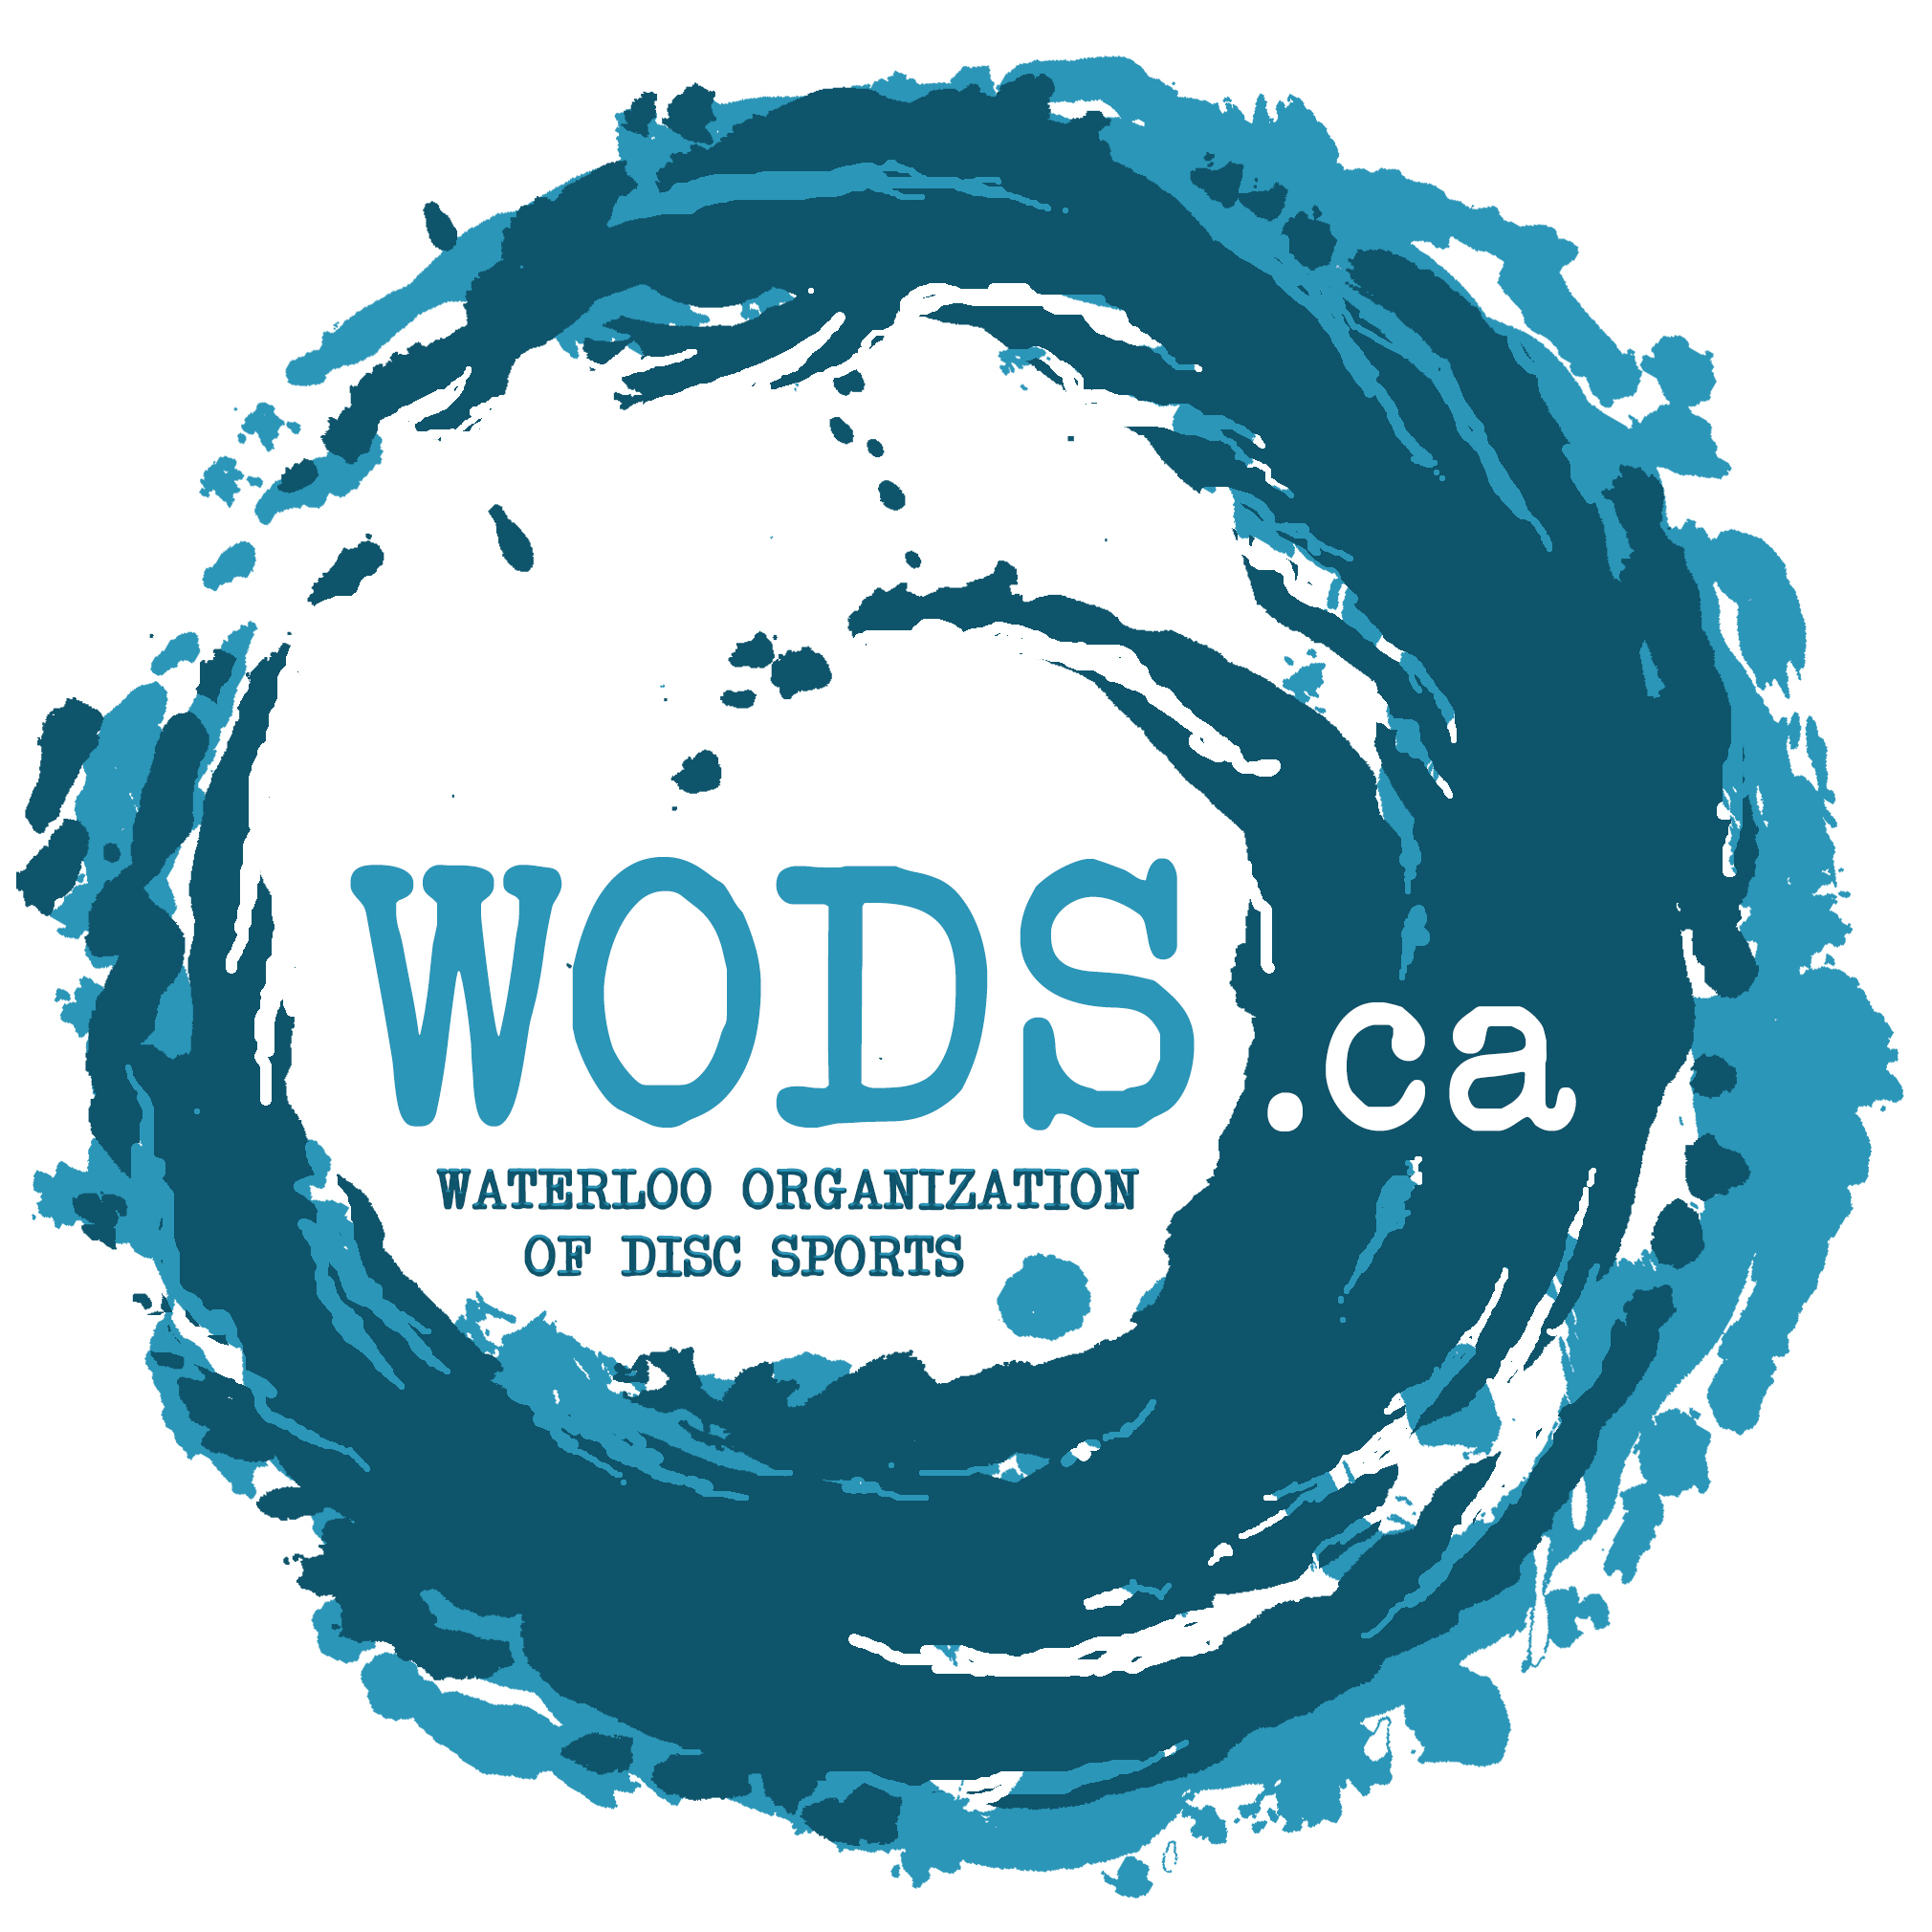 The Waterloo Organization of Disc Sports (WODS) is a non-profit organization run entirely by volunteers with the purpose of providing disc sports opportunities to the Waterloo Region. We try hard to offer varying levels of ultimate throughout the year.